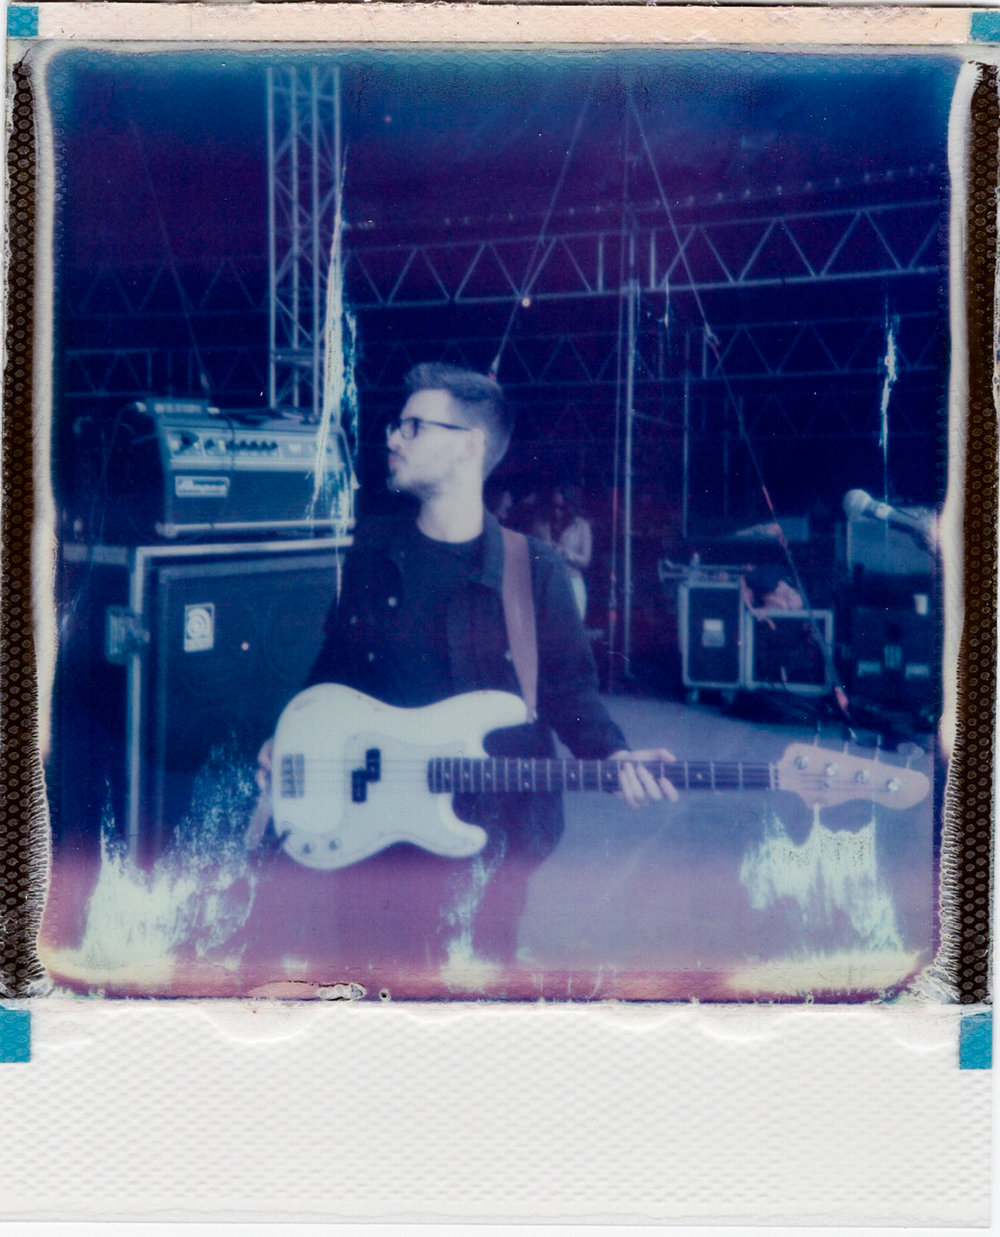 mary_caroline_russell_music_photographer_altanta_nashville_polaroid_mountain_jam_2017_17